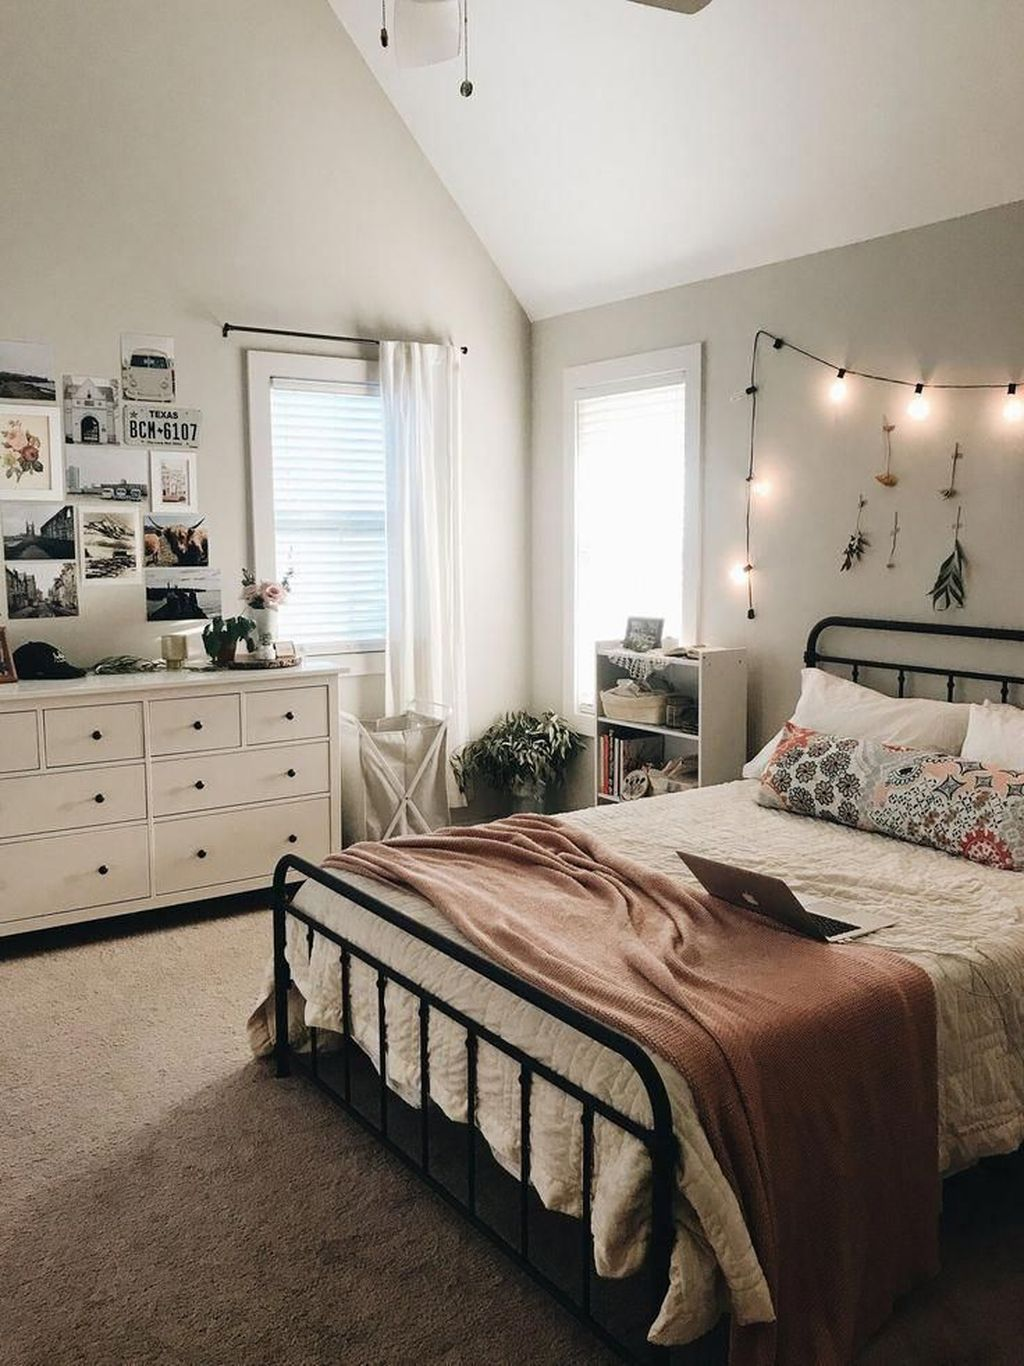 Fascinating Apartment Bedroom Decor Ideas 13